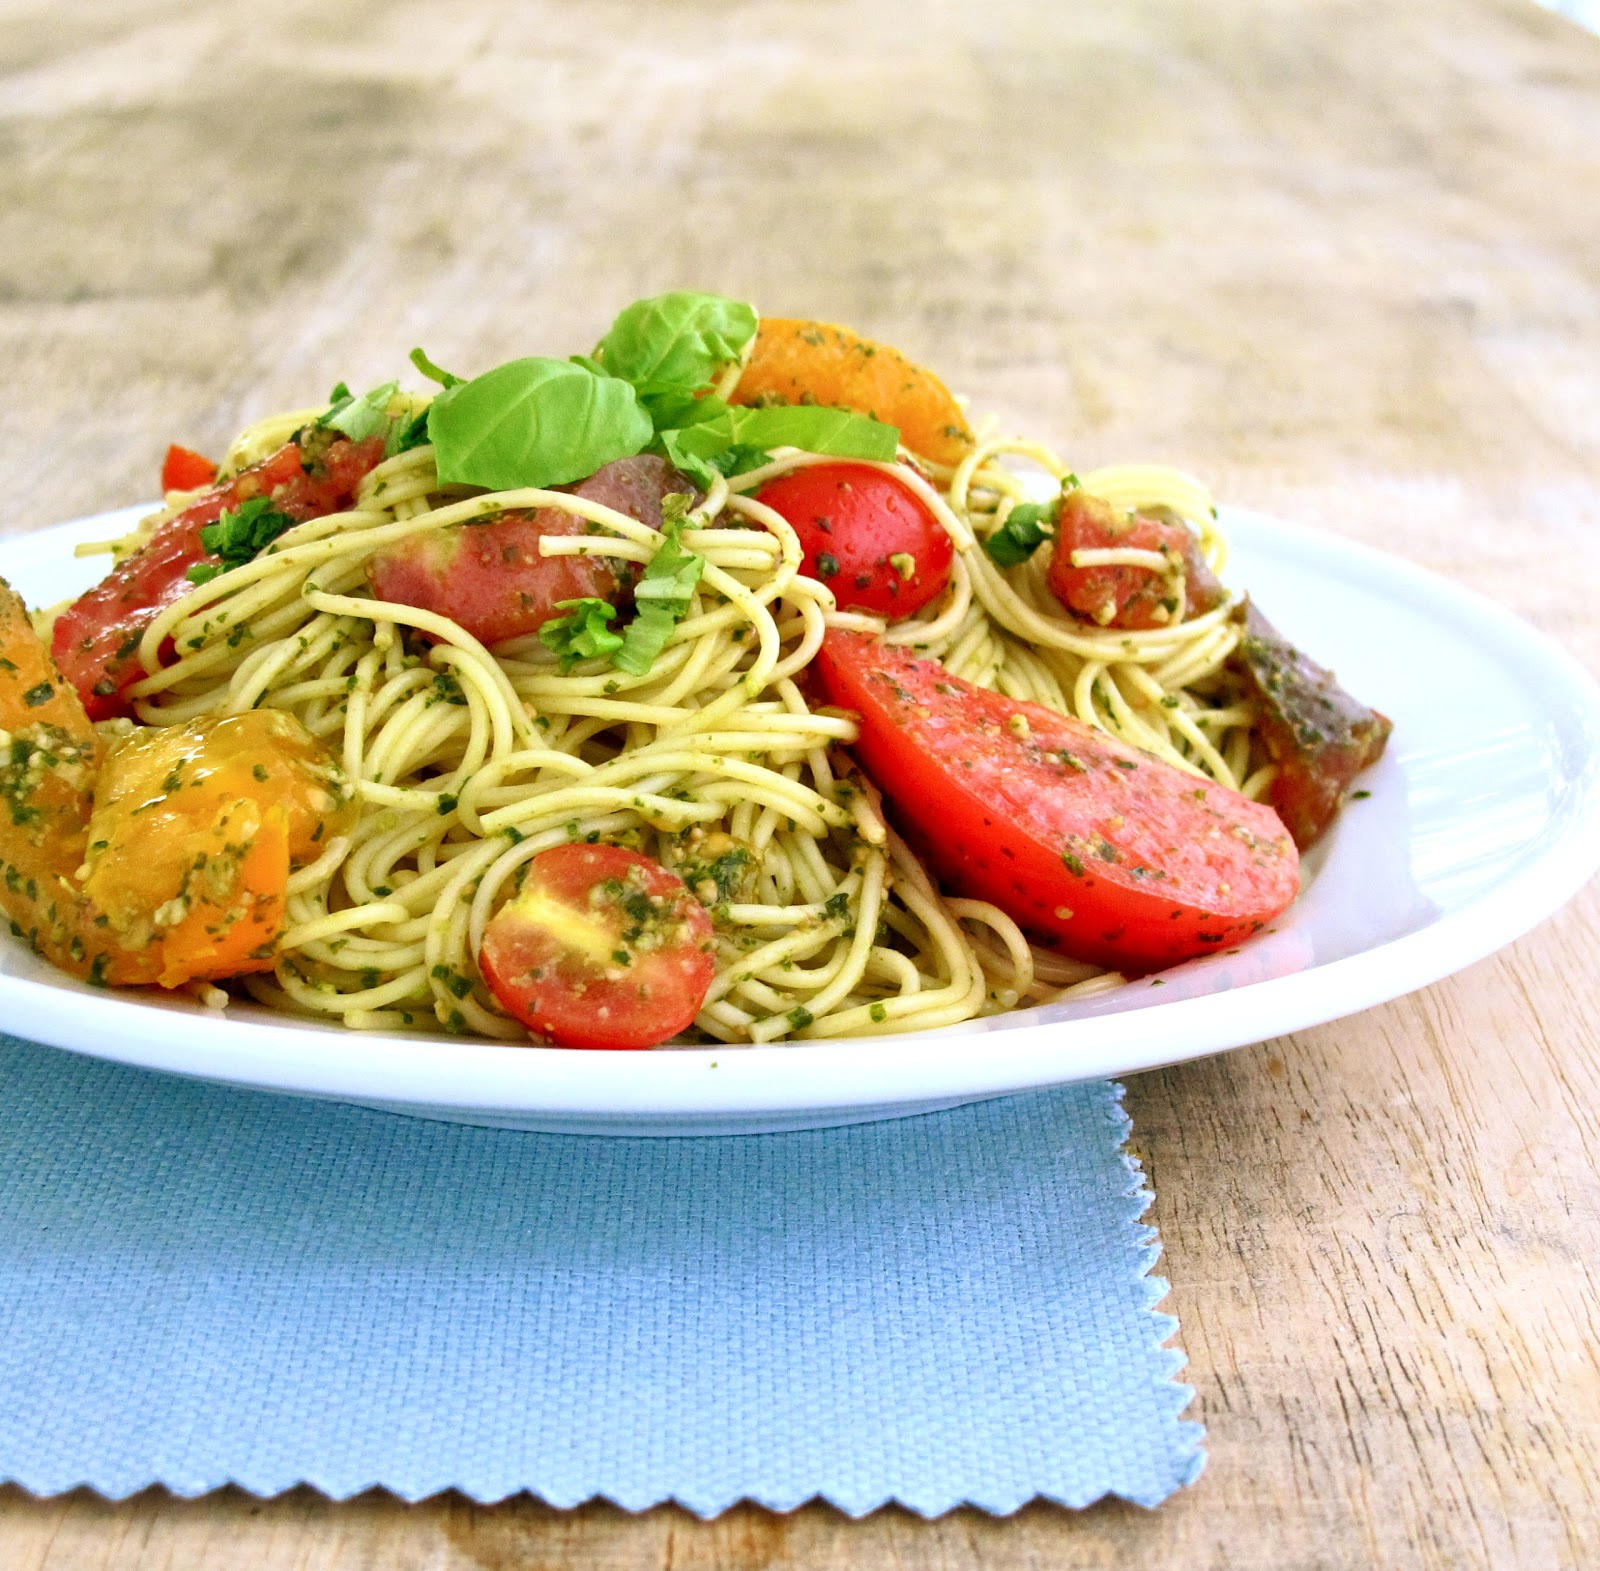 ... Pesto Sauce | Fresh Basil Pesto Sauce | Pasta, Pizza & Shrimp Pesto